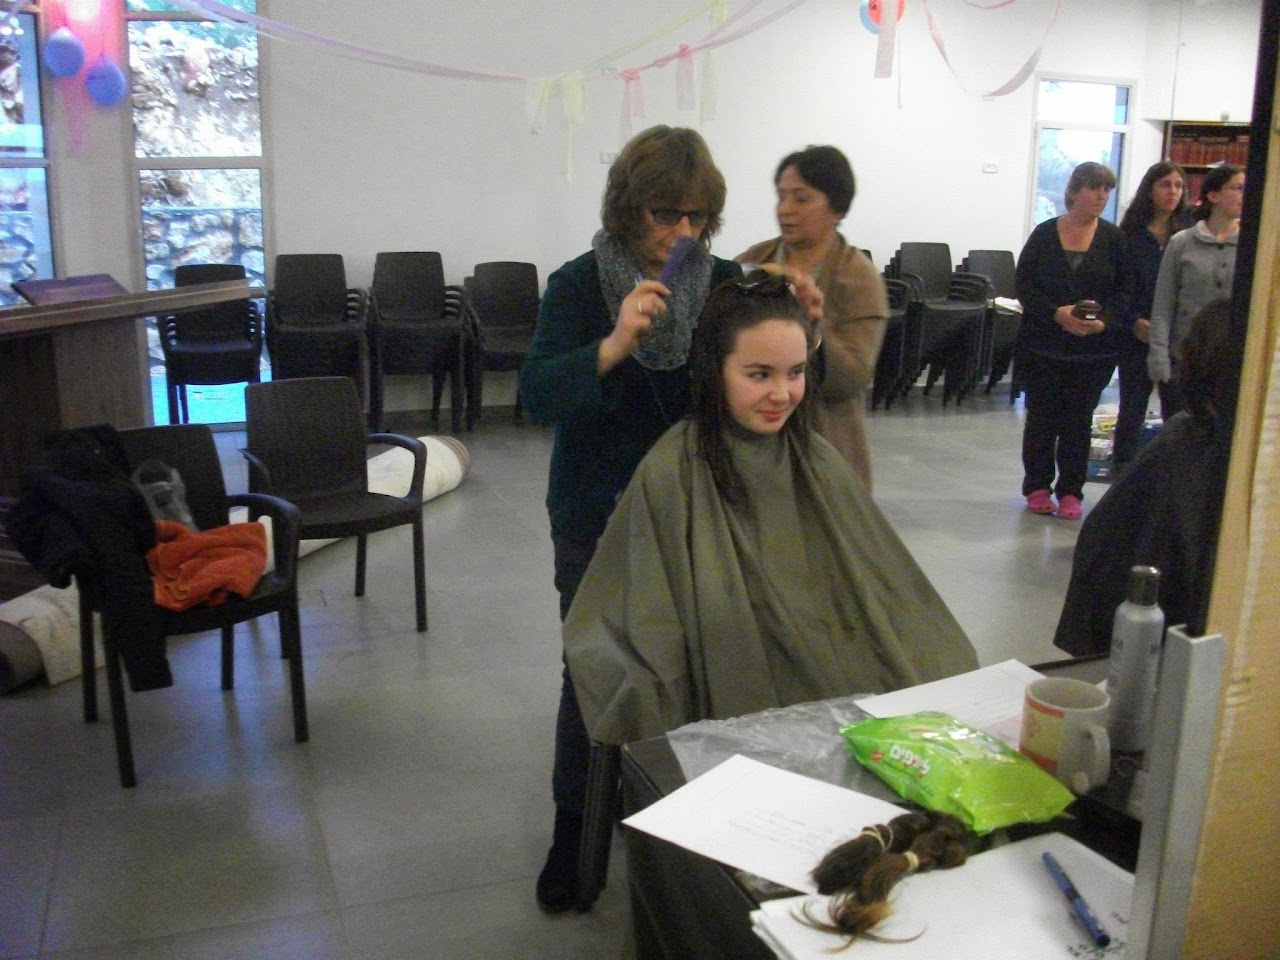 Donating hair for cancer patients 2014  - 1912152_539677126148585_1460874468_o.jpg